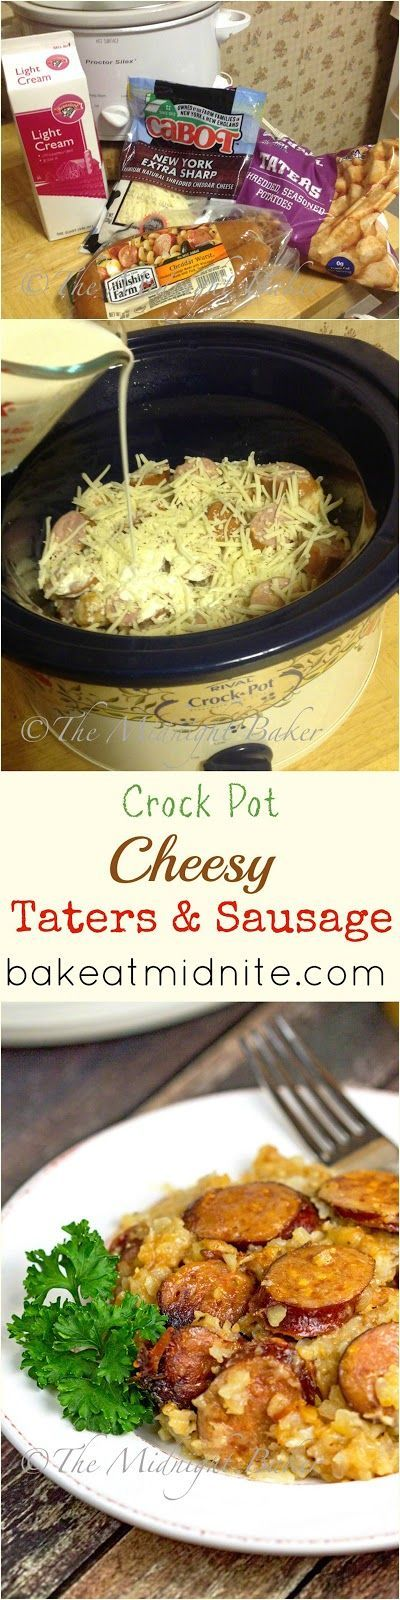 Crock Pot Cheesy Taters & Sausage | http://bakeatmidnite.com | #slowcooker…